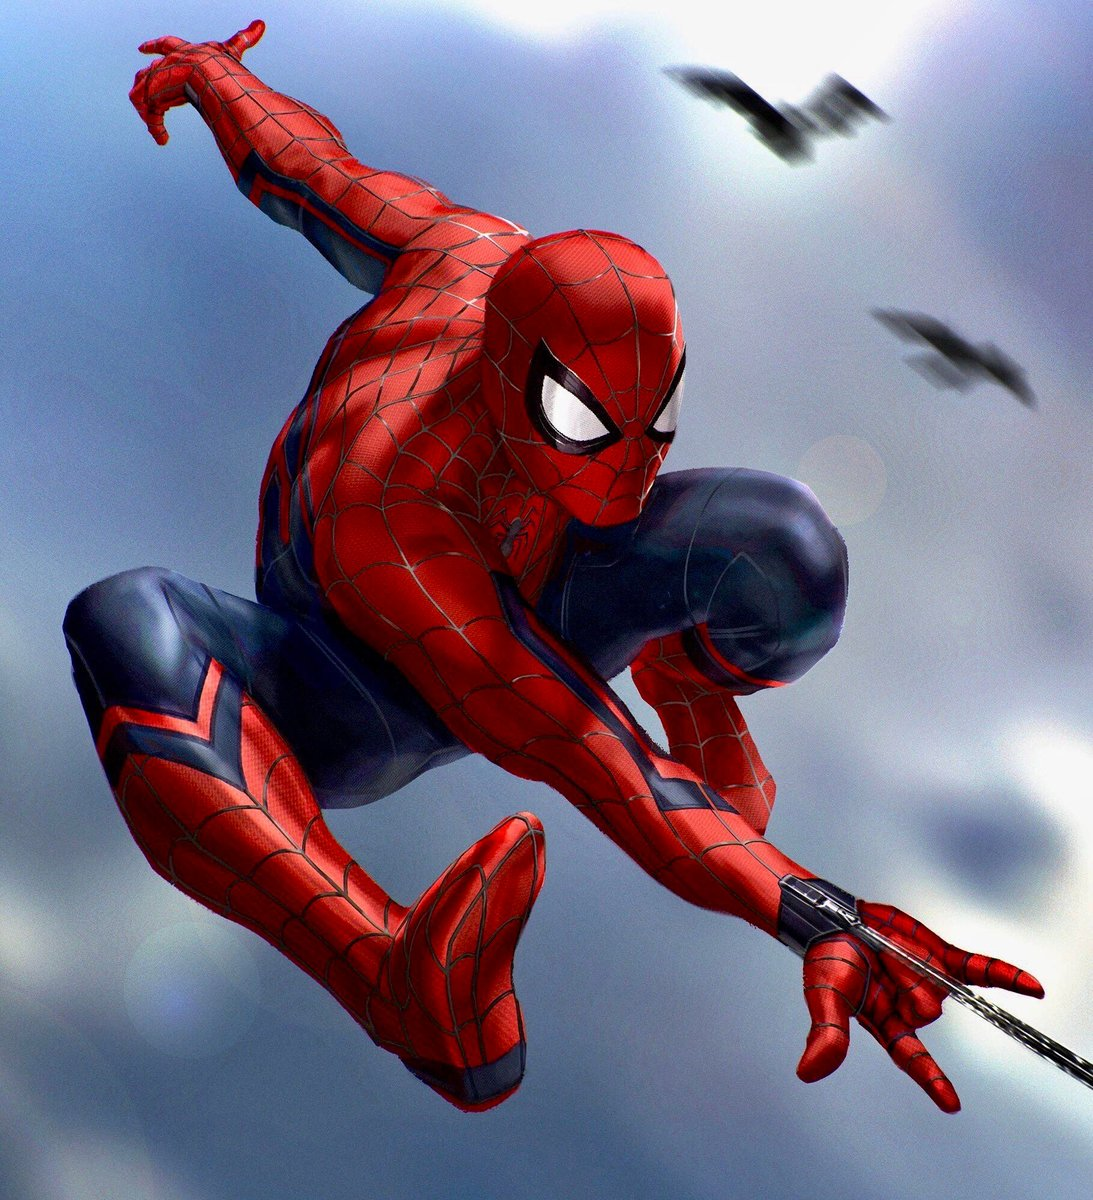 Some great Spider-Man art from Andy Park, bringing the Ultimate Spider-Man vibes!  #andypark #spider-man #peterparker #marvel #mcu #avengers https://t.co/zeMFHURdbD